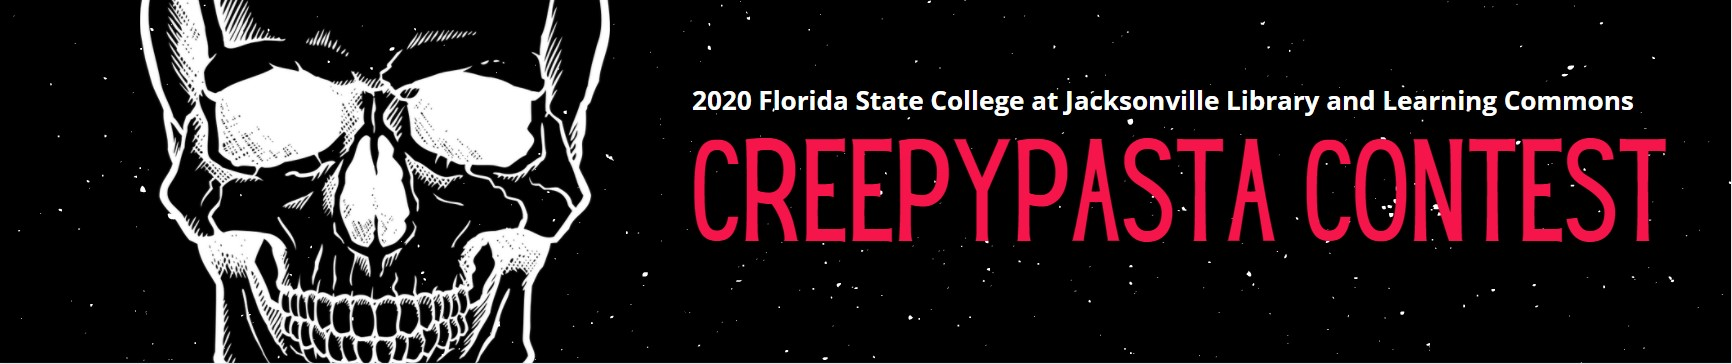 2020 FSCJ Library and Learning Commons Creepy Pasta Contest